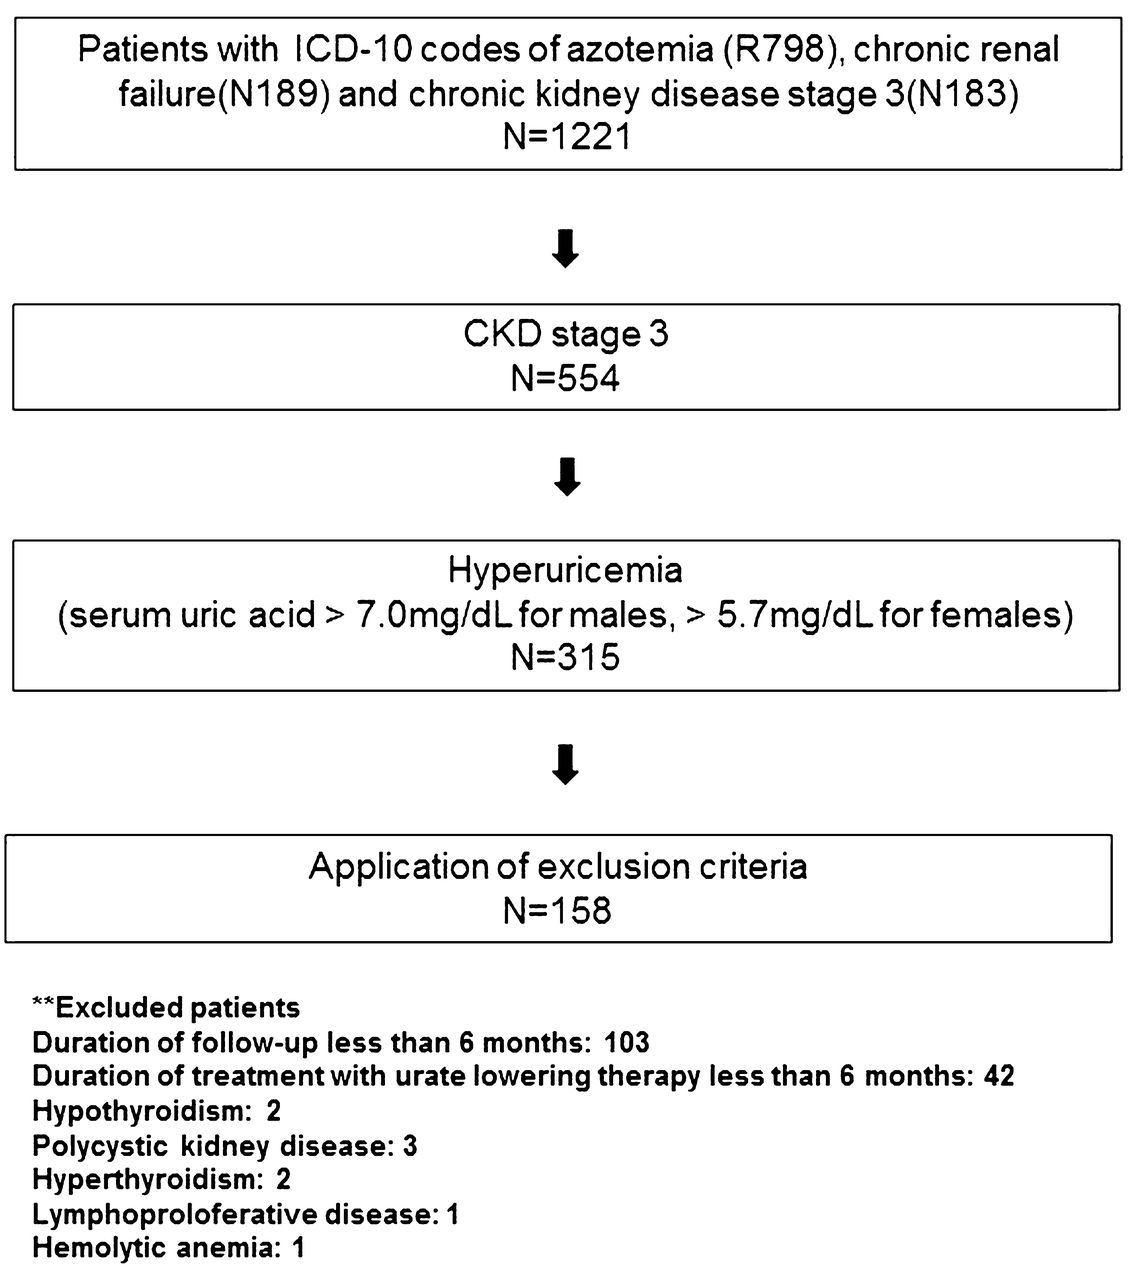 Effect of Urate Lowering Therapy on Renal Disease